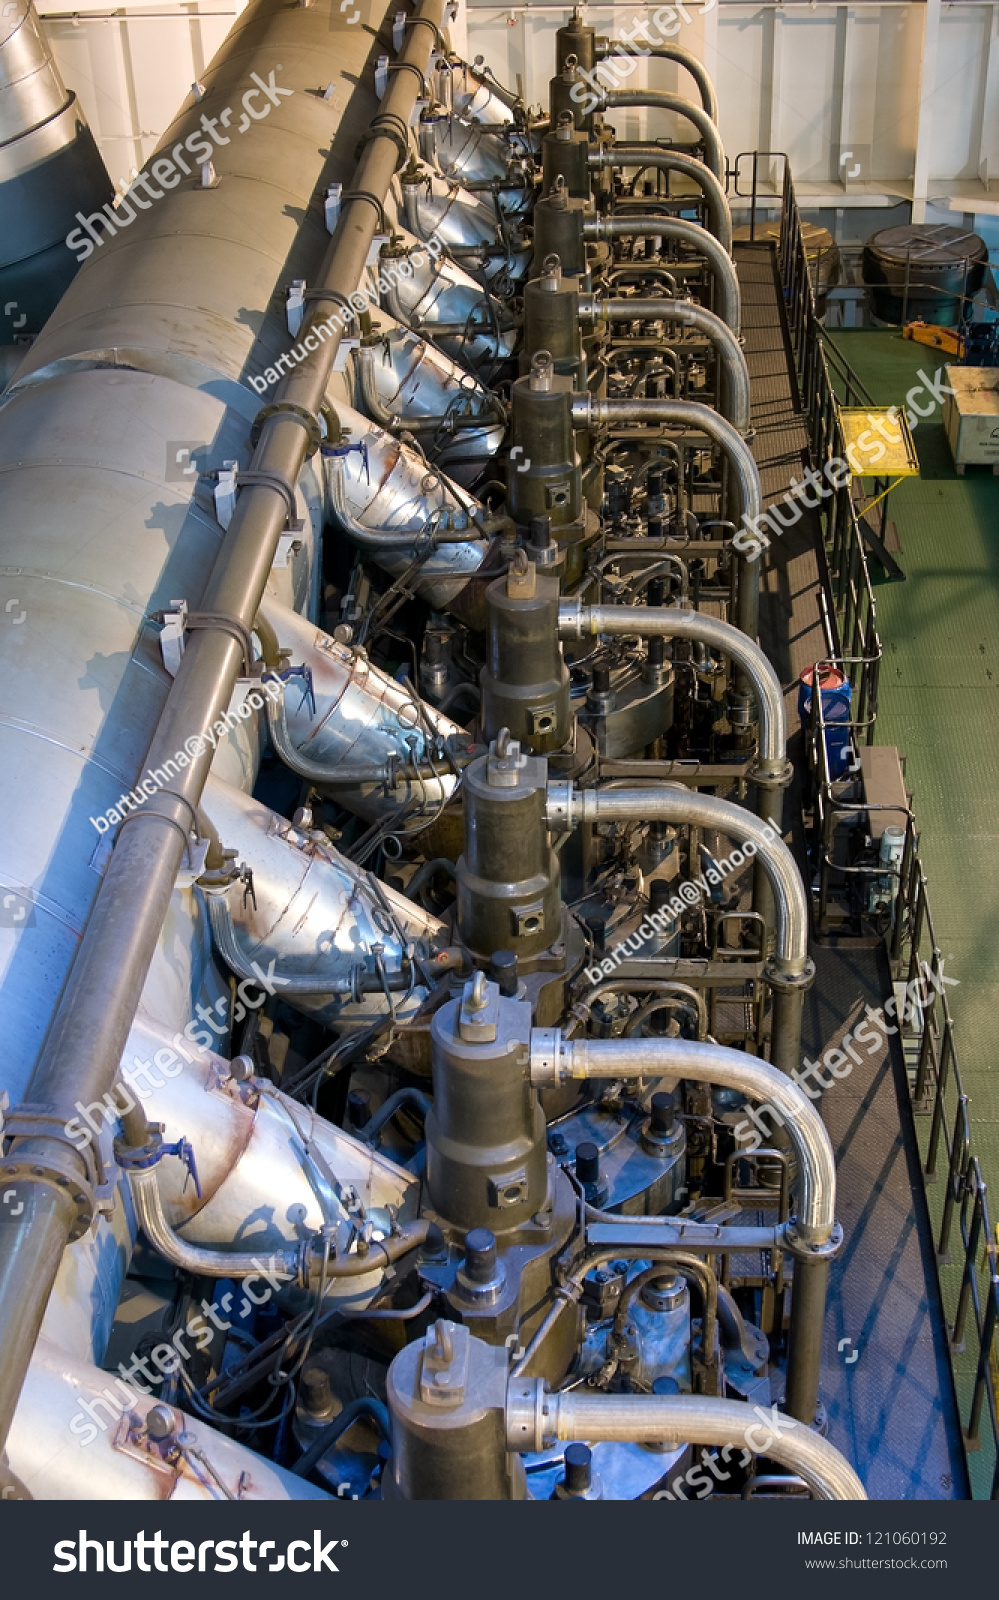 Cargo Ship Engine Room: Marine Engine Of The Large Container Ship Stock Photo